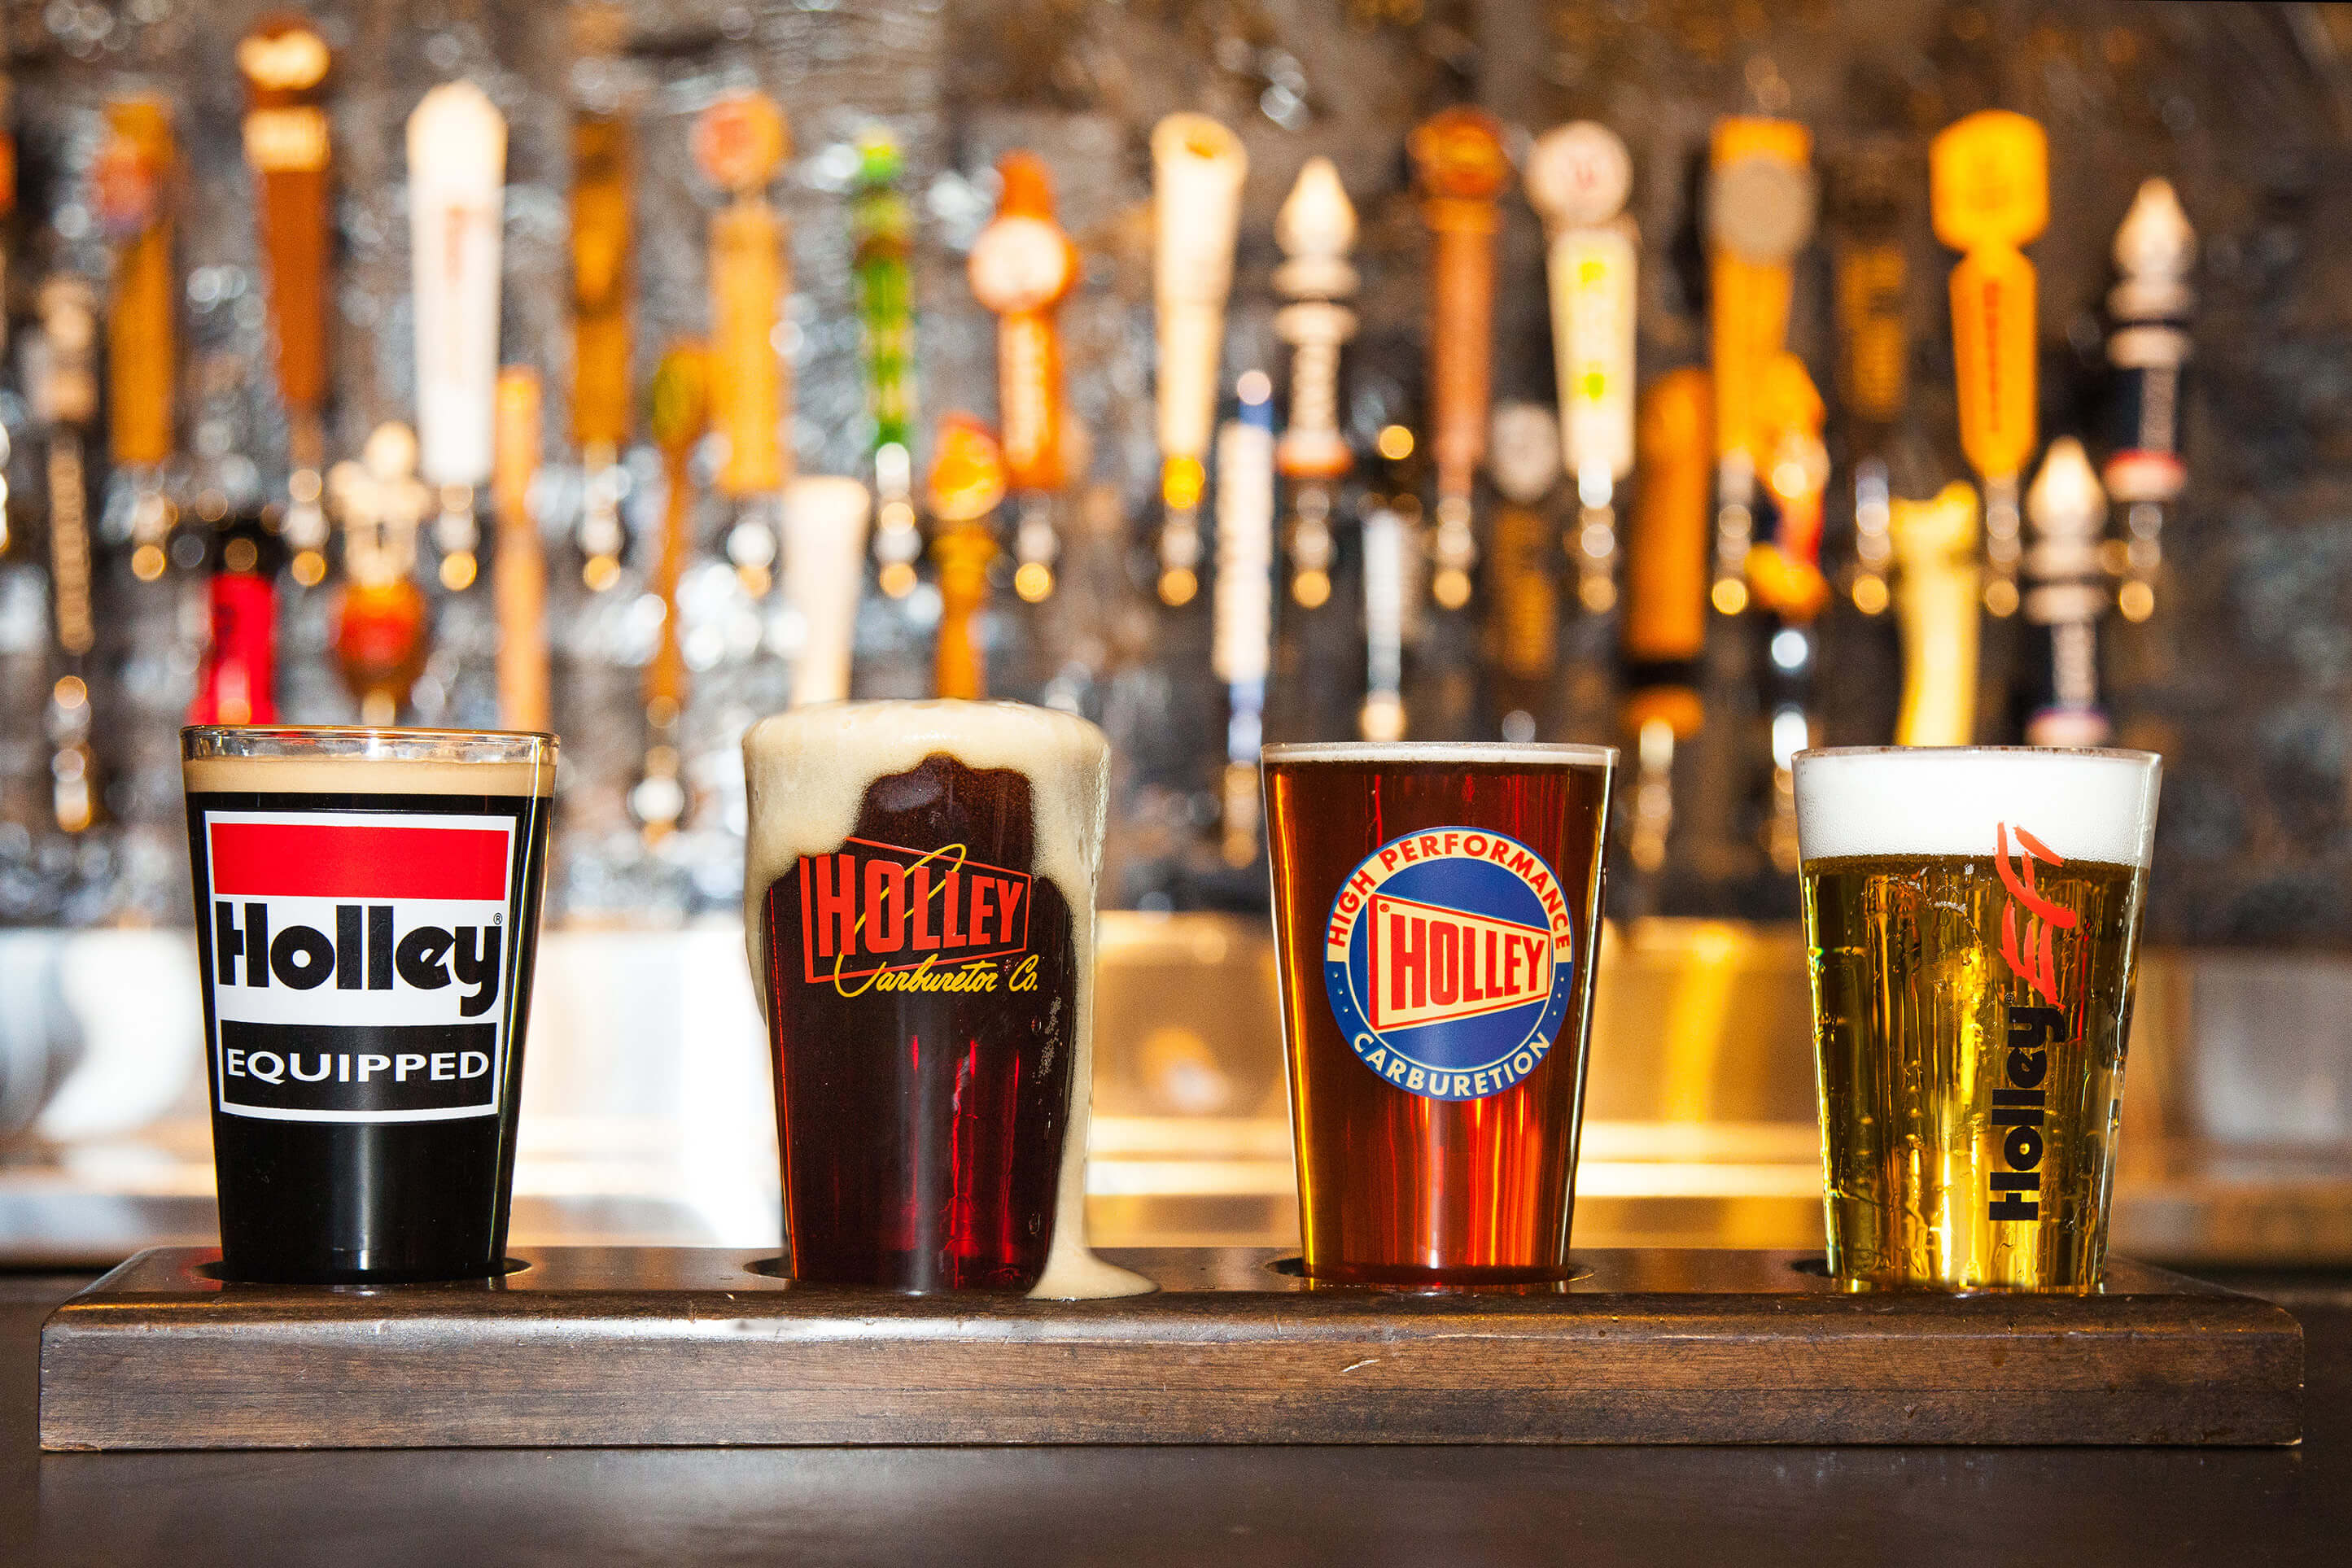 HOLLEY 16OZ  LOGO PUB GLASS ASSORTMENT - 4 PACK (SERIES 1)